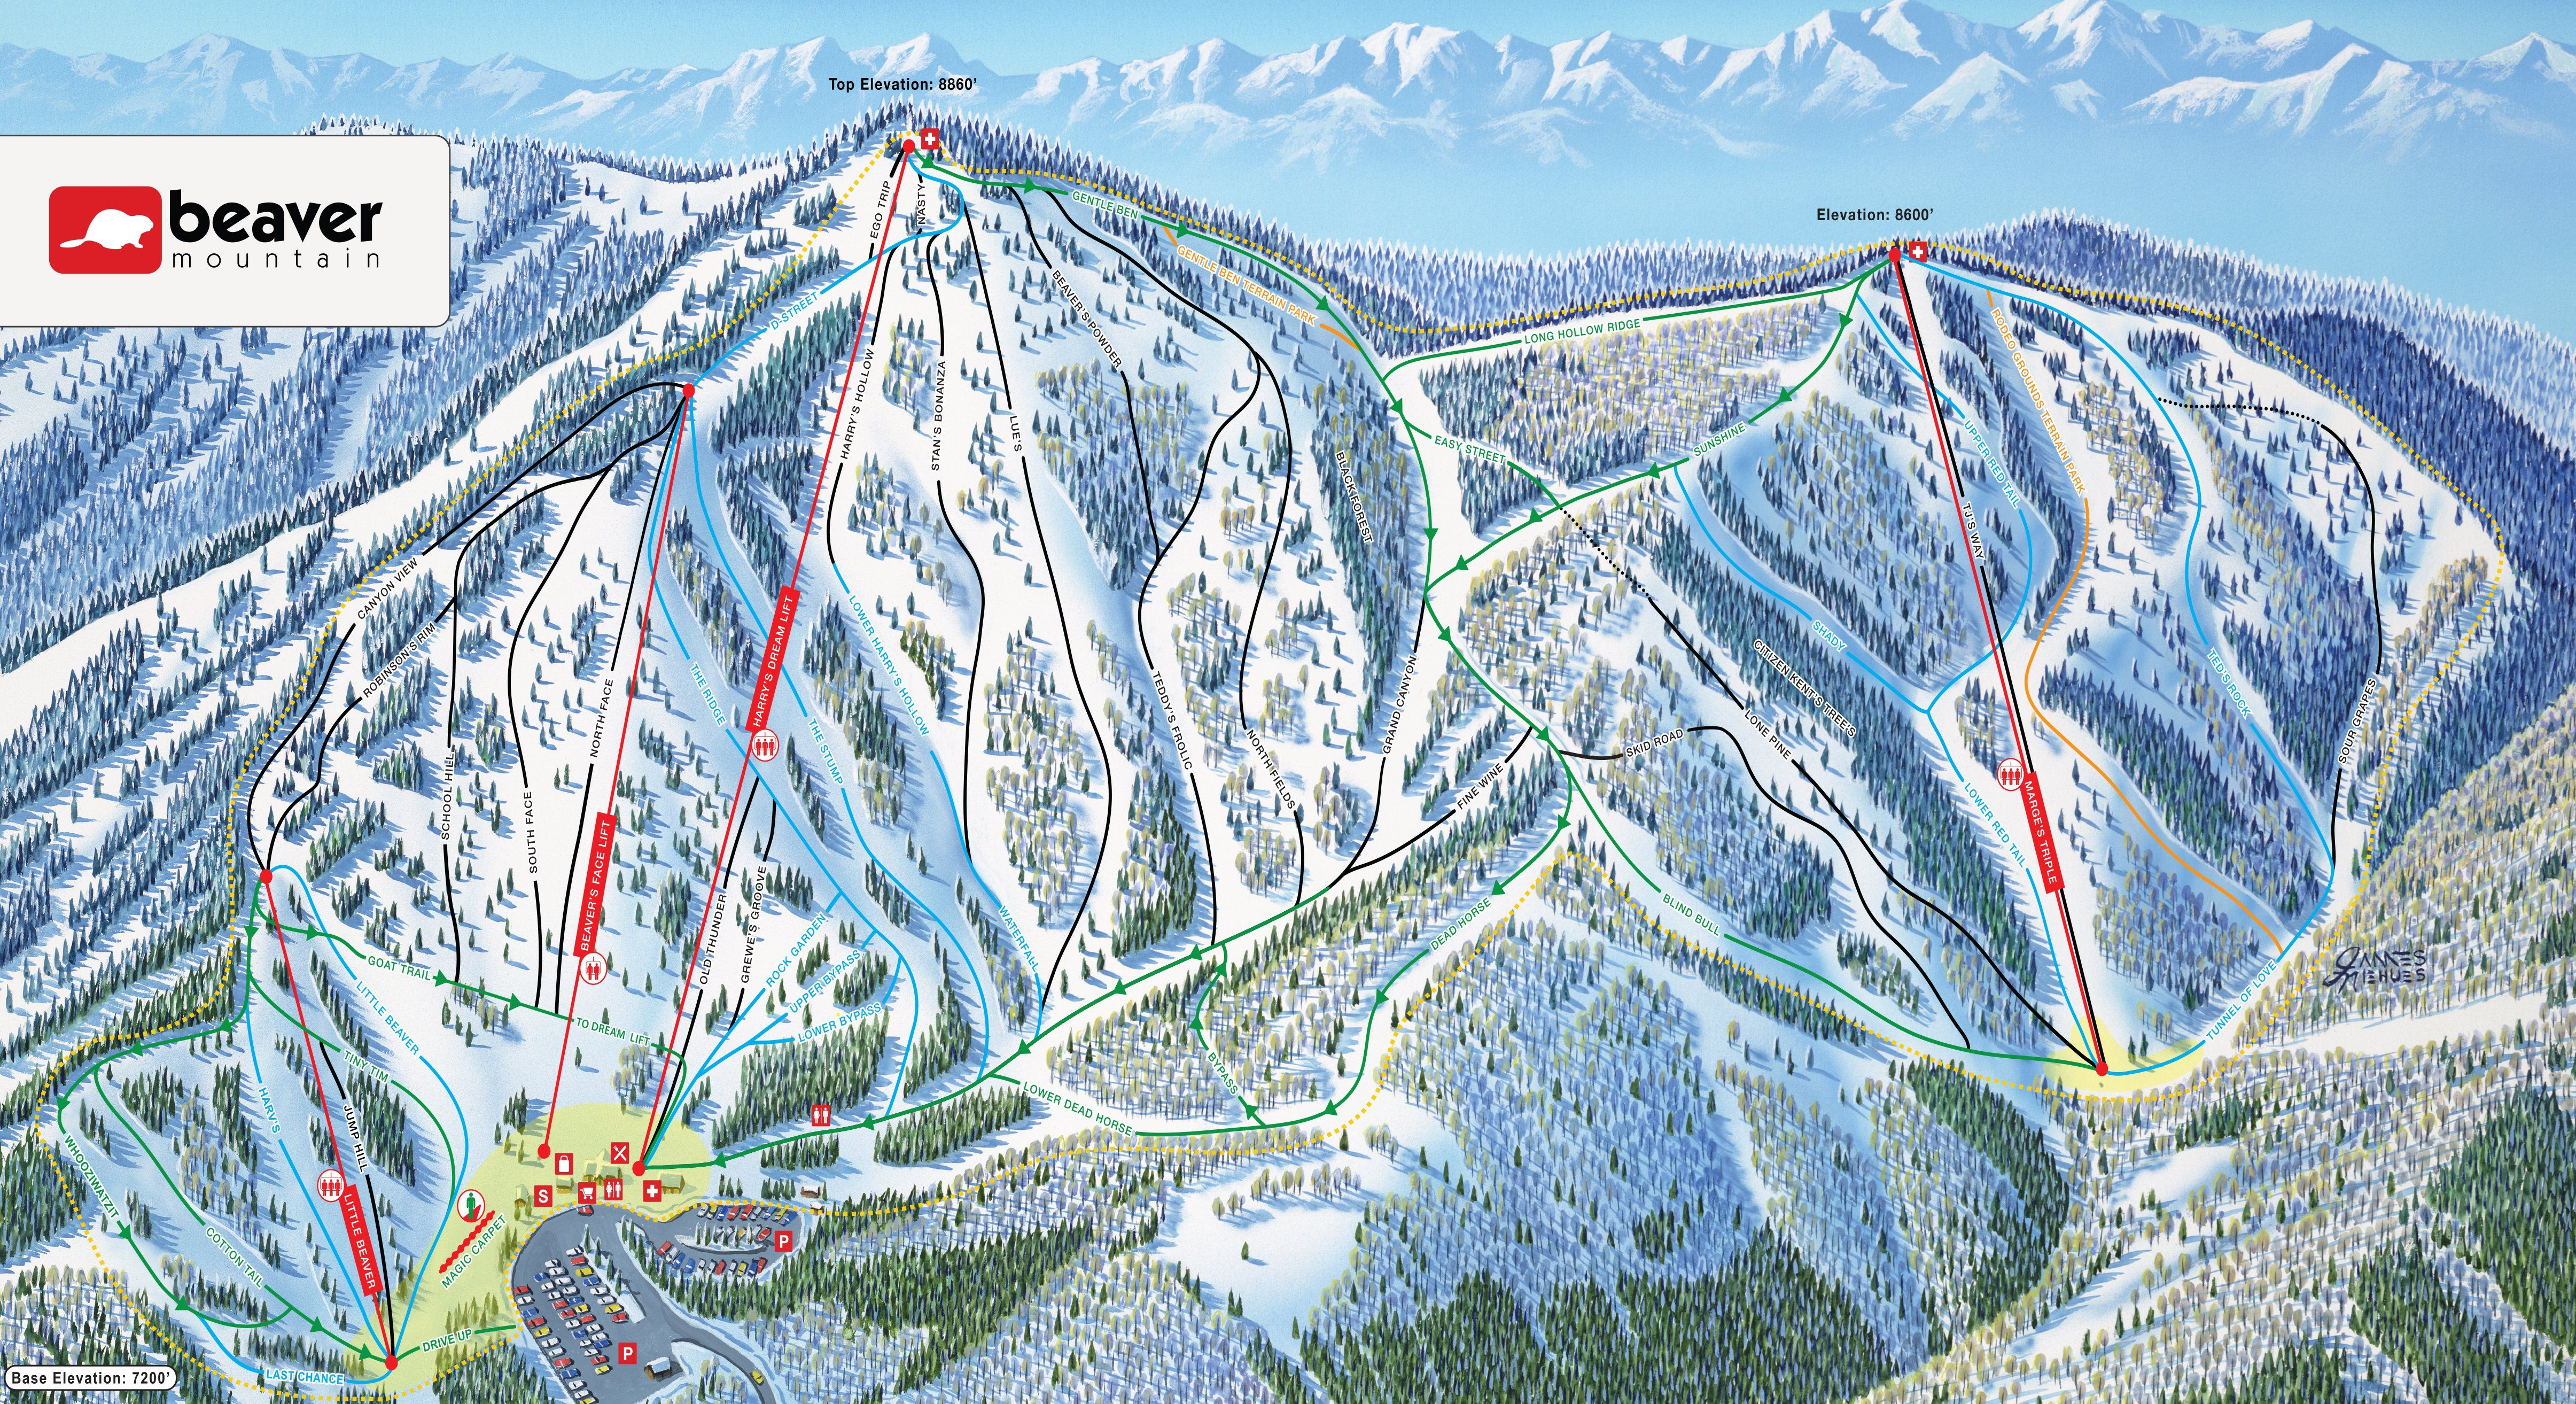 beaver mountain resort map (utah) | products | pinterest | trail